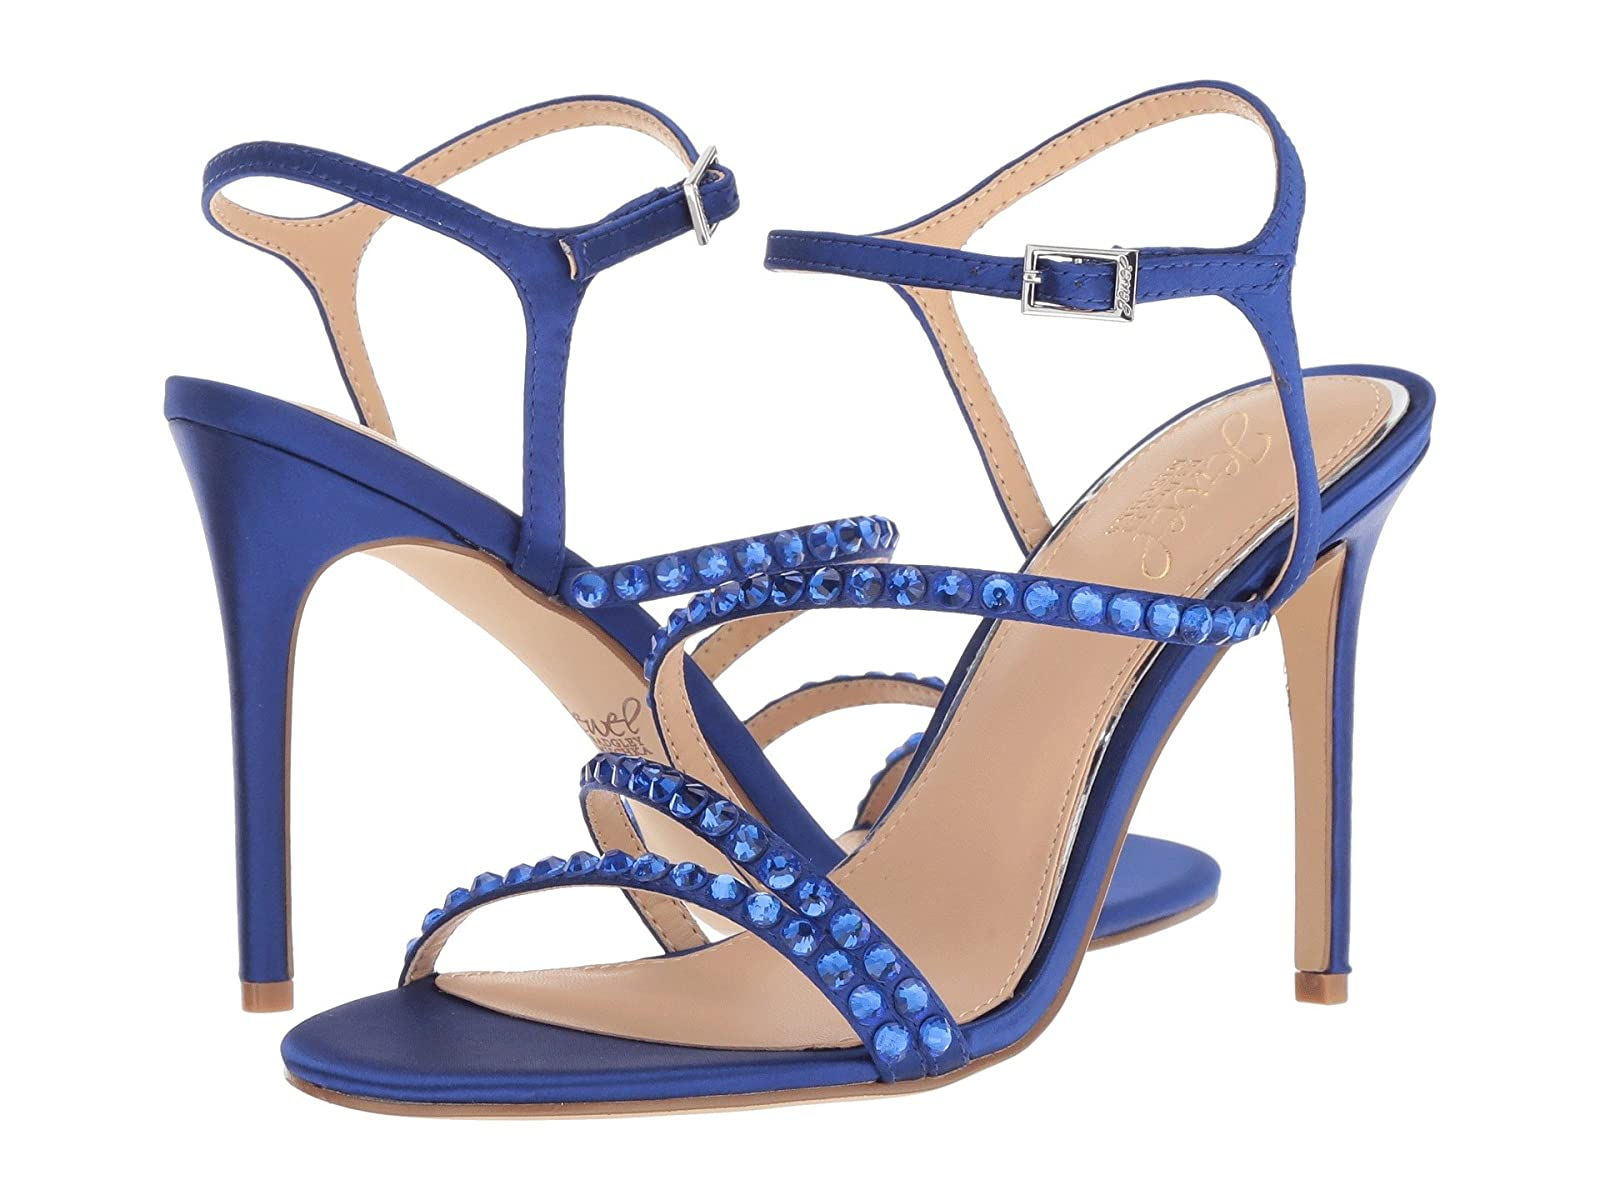 Jewel Badgley Mischka MarimbaAtmospheric grades have affordable shoes